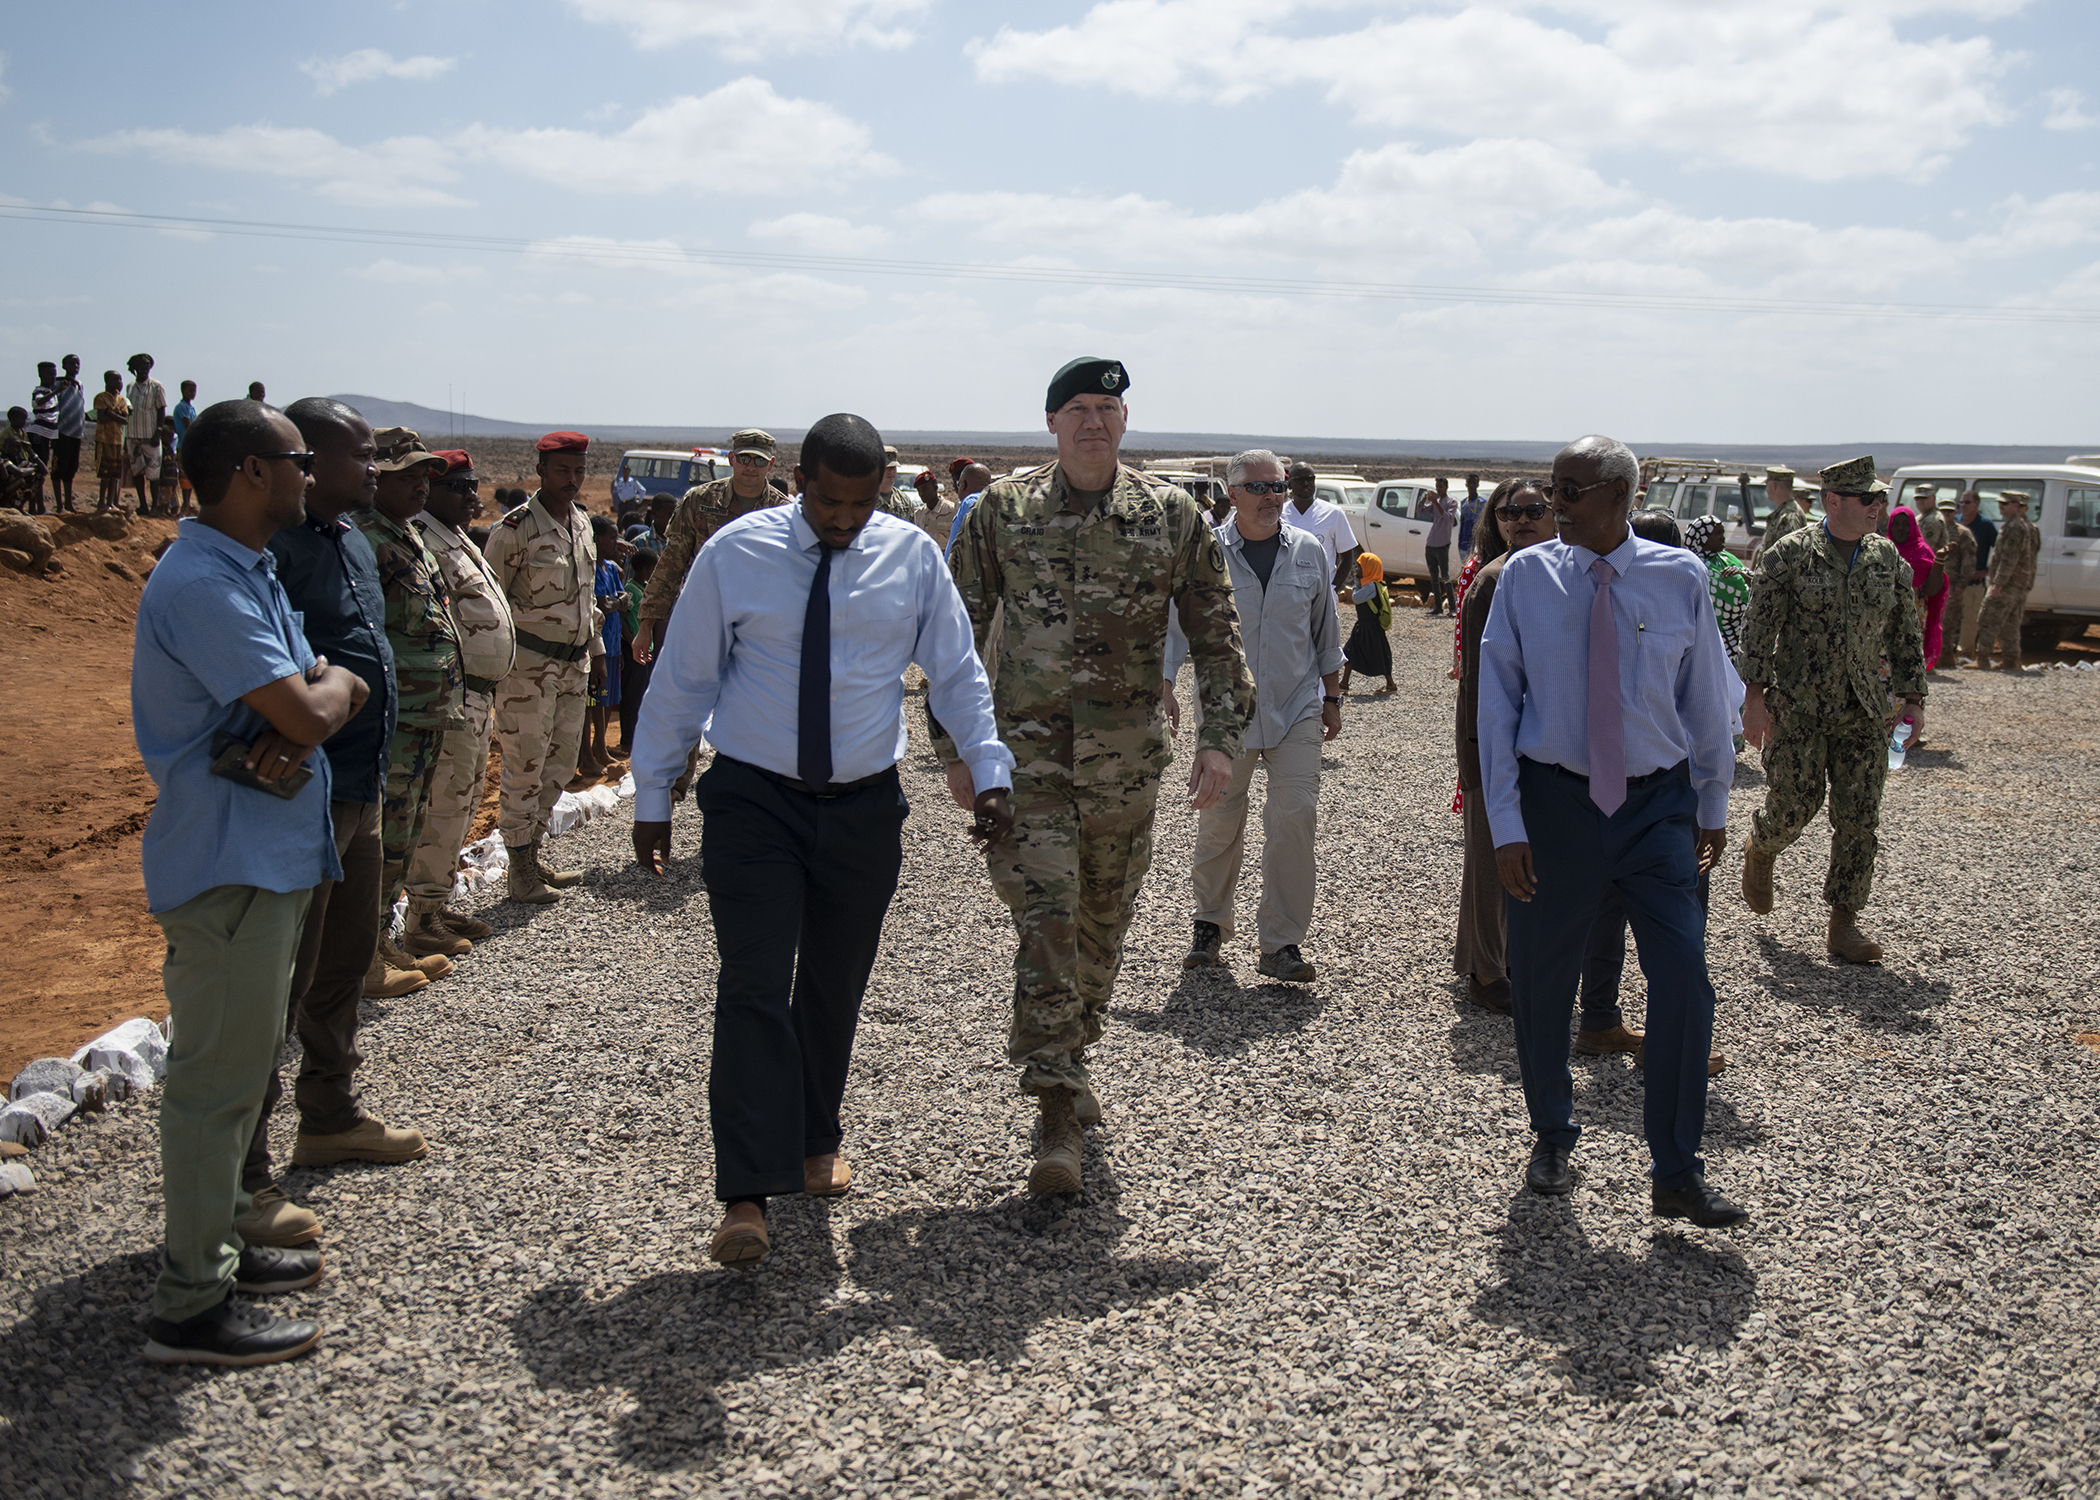 U.S. Army Maj. Gen. James D. Craig, commanding general, Combined Joint Task Force-Horn of Africa (CJTF-HOA), walks with Djiboutian government officials during the Ali Oune Medial Clinic ribbon cutting ceremony in Ali Oune, Djibouti, Jan. 31, 2019. The clinic, which U.S. Navy Seabees from Naval Mobile Construction Battalion 1, assigned to CJTF-HOA, have been working to complete for five months, is intended to enhance the Ministry of Health for Djibouti's ability to provide basic medical, birth and after care to the Ali Oune village and its more than 1,000 residents and rural neighbors. (U.S. Air Force photo by Tech. Sgt. Shawn Nickel)